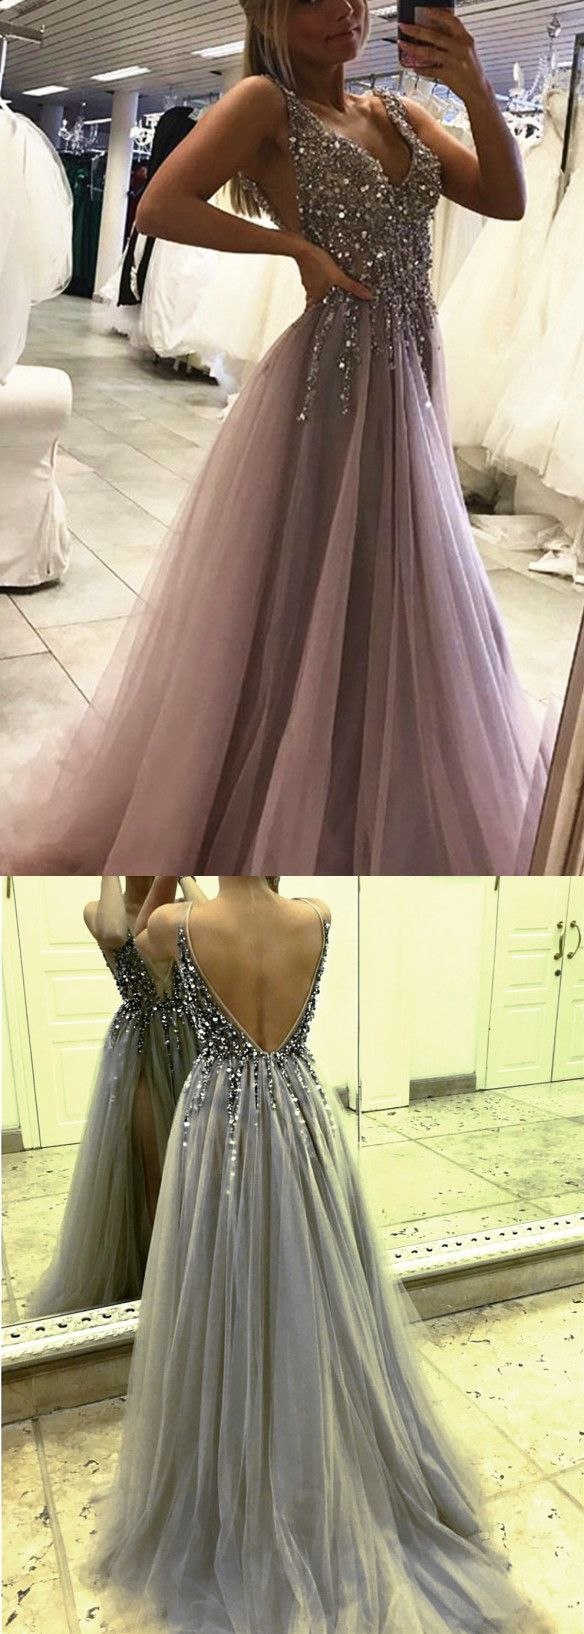 Gray long prom dress with beads formalbridal gowns pinterest